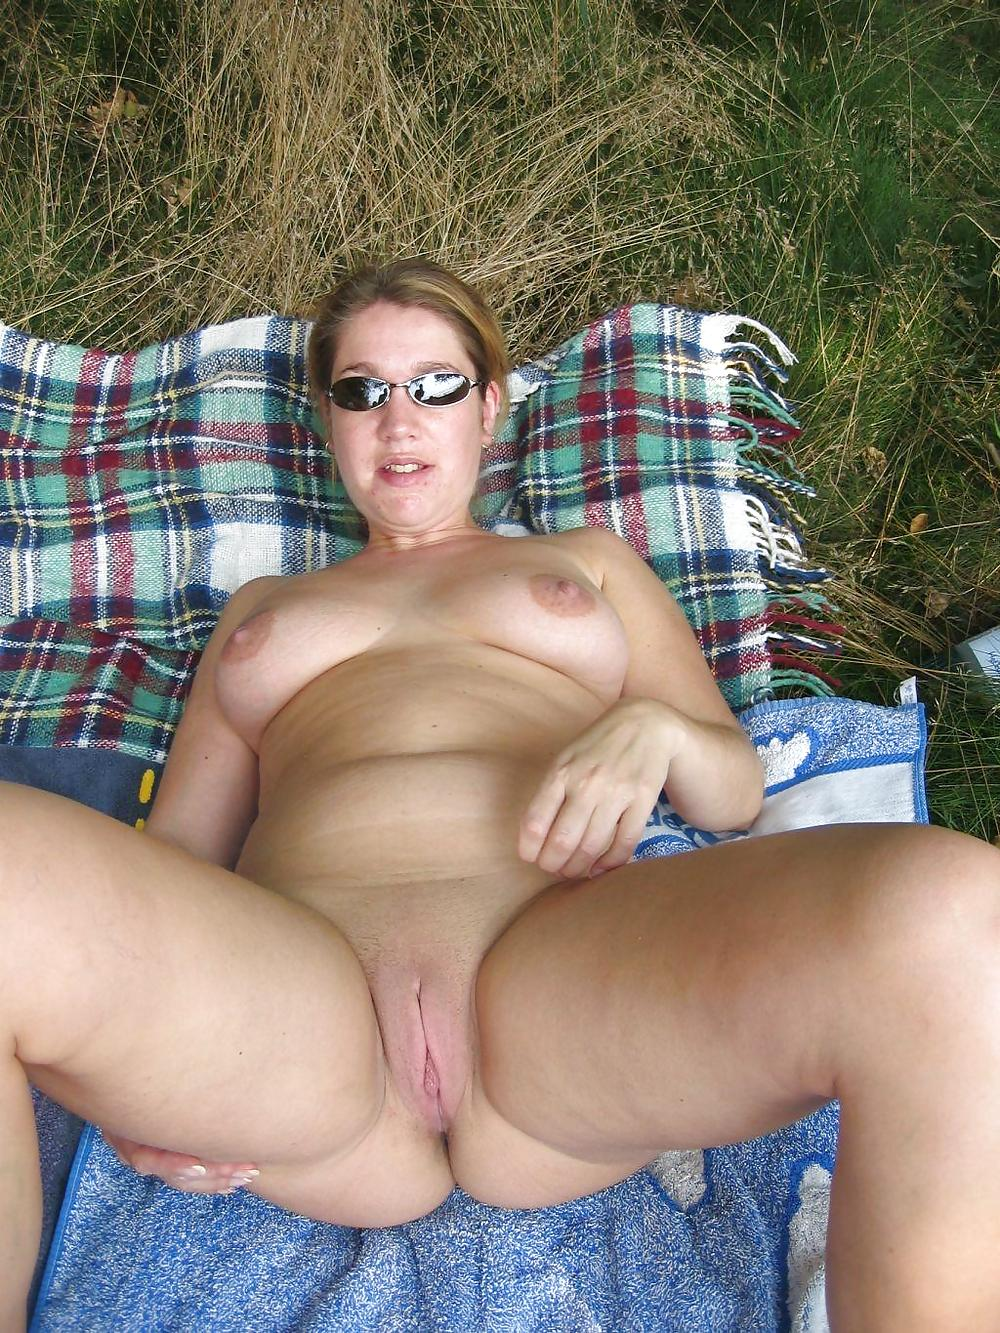 Hot Sexy Wives Moms And Milfs 19 Pics Xhamster